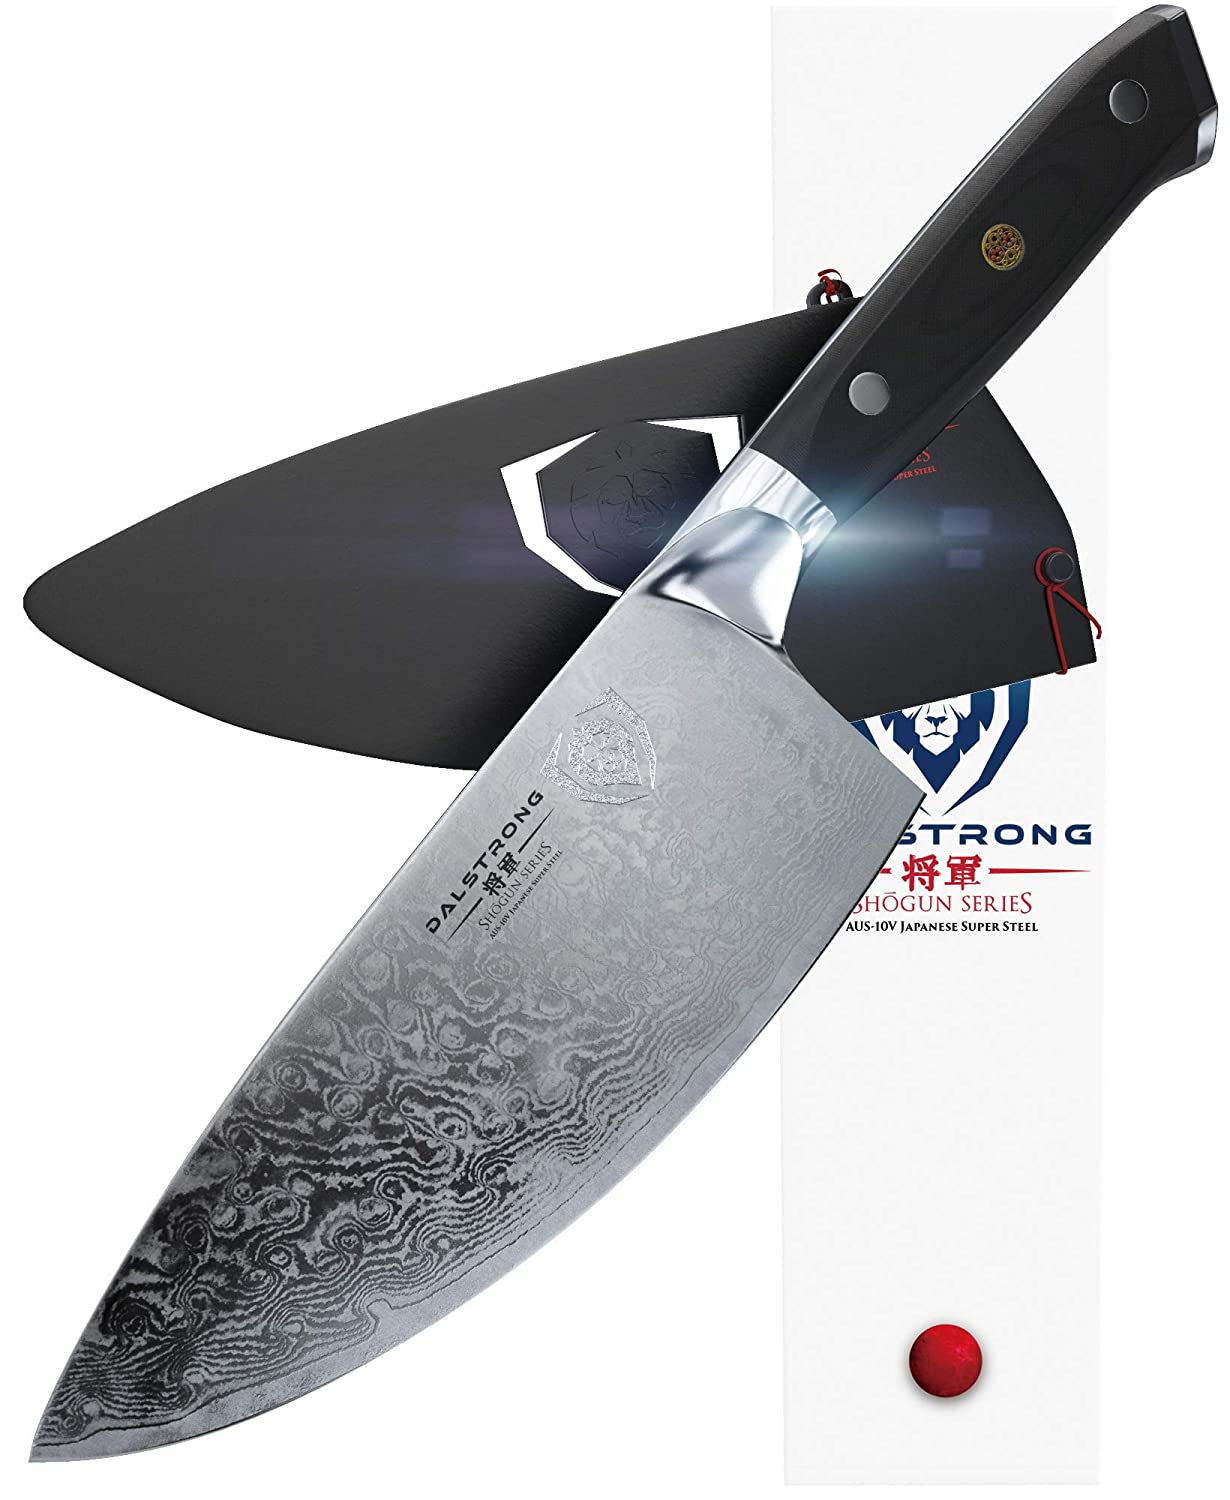 Dalstrong Rocking Herb Knife - Shogun Series - Japanese AUS-10V Super Steel (Vacuum Heat Treated)- 7